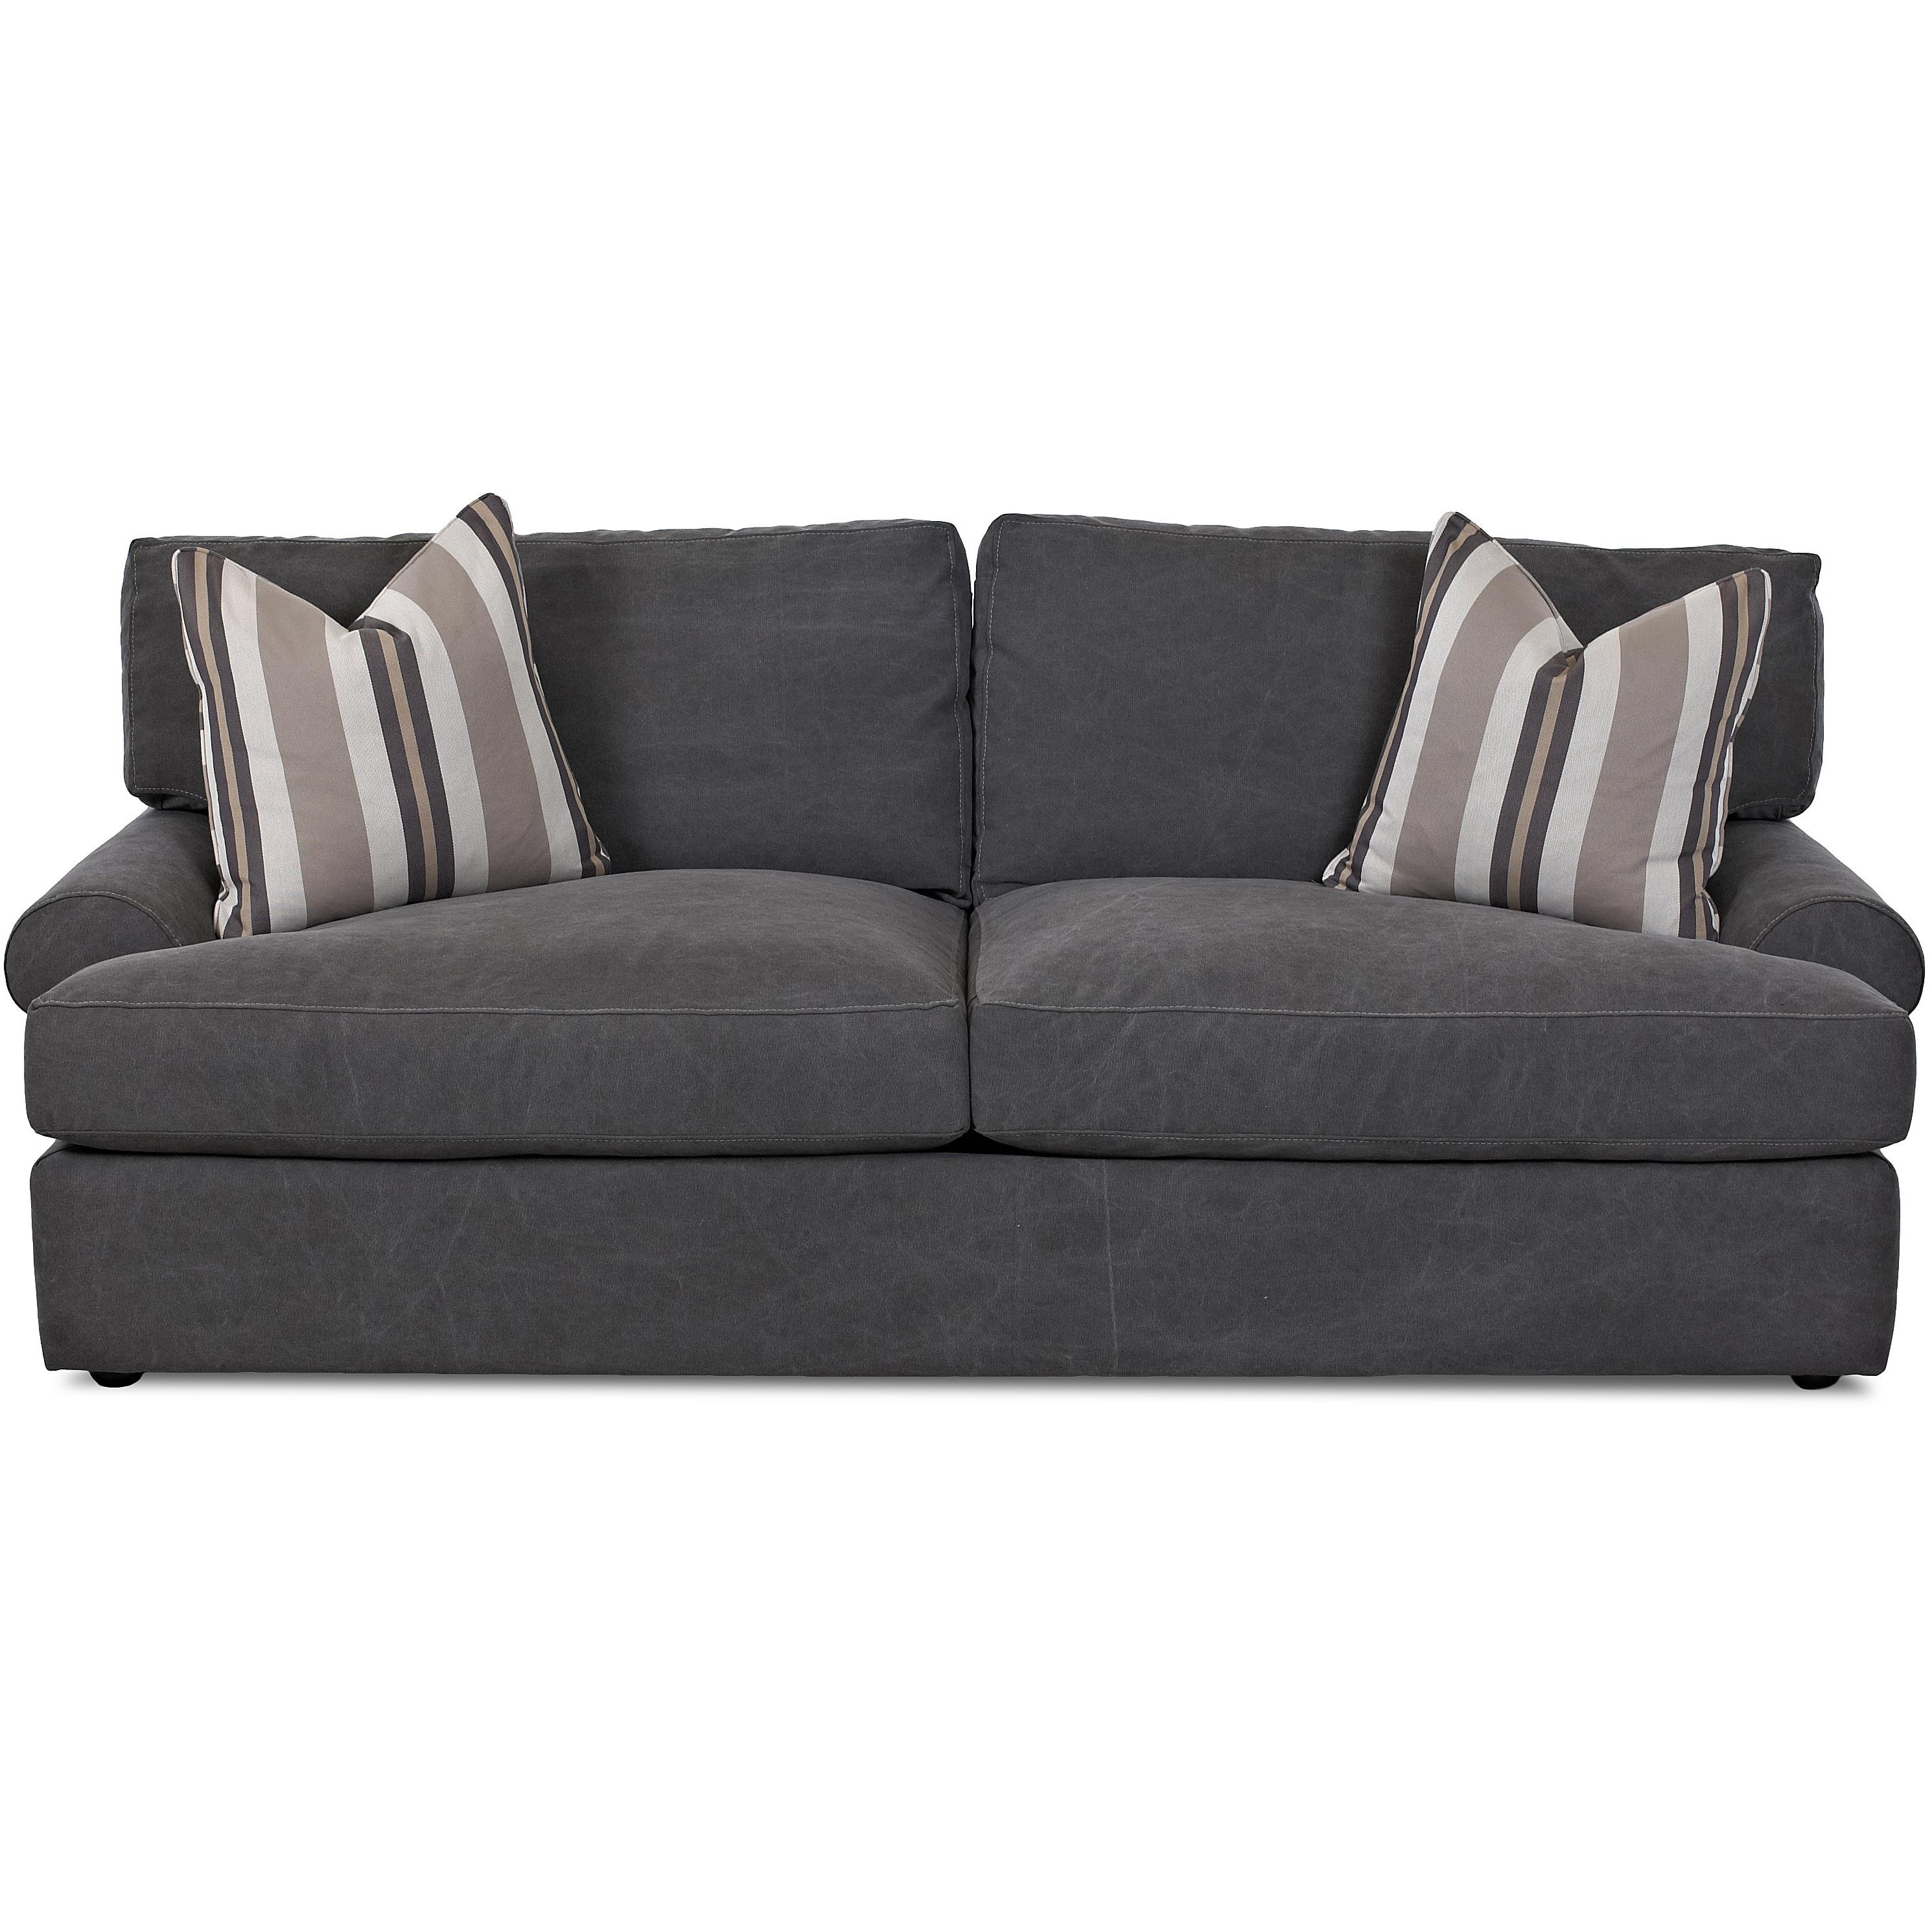 Klaussner Adelyn Contemporary Sofa   Item Number: D42800 S TiddyPewter